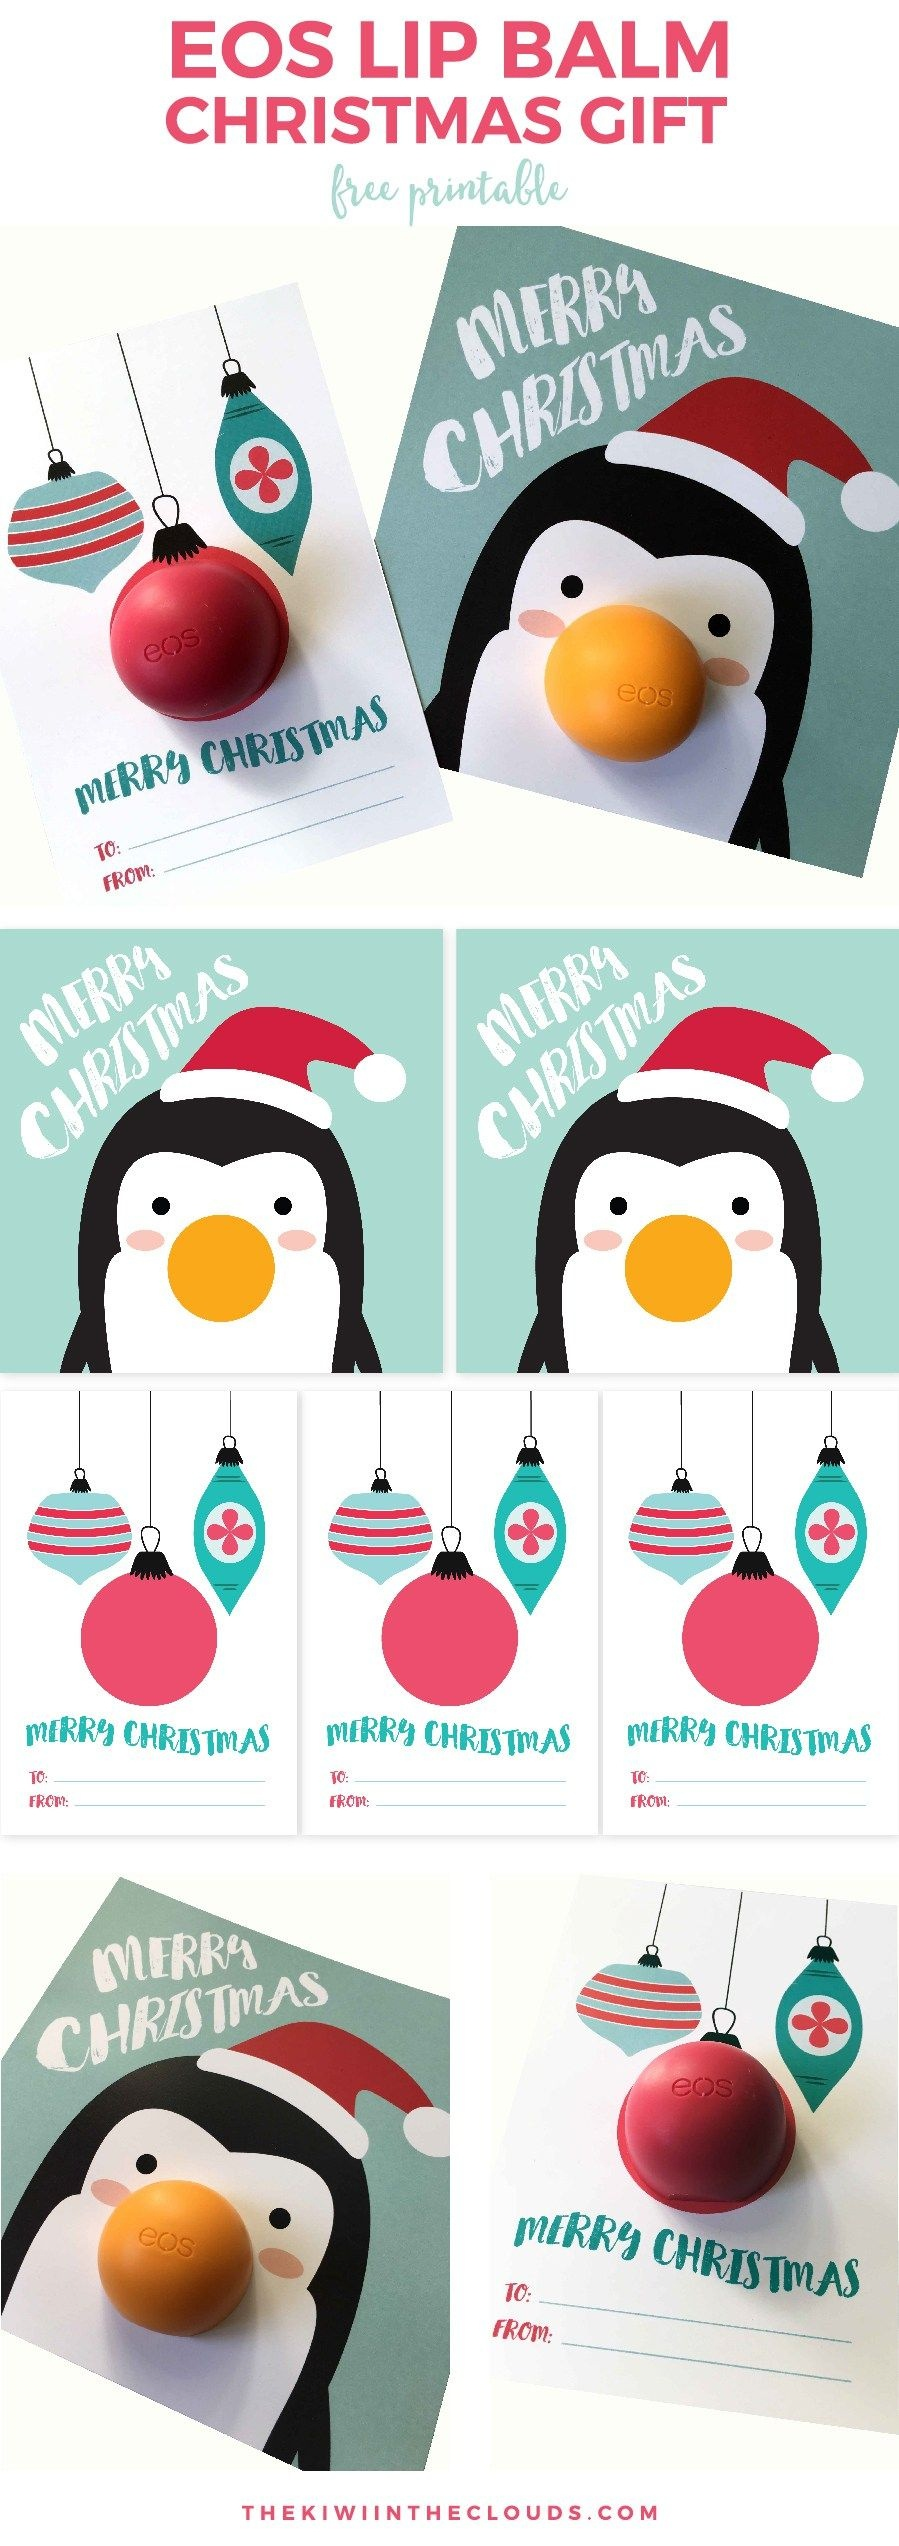 These Eos Christmas Free Printables Are The Best Small Gift Idea - Free Printable Eos Christmas Card